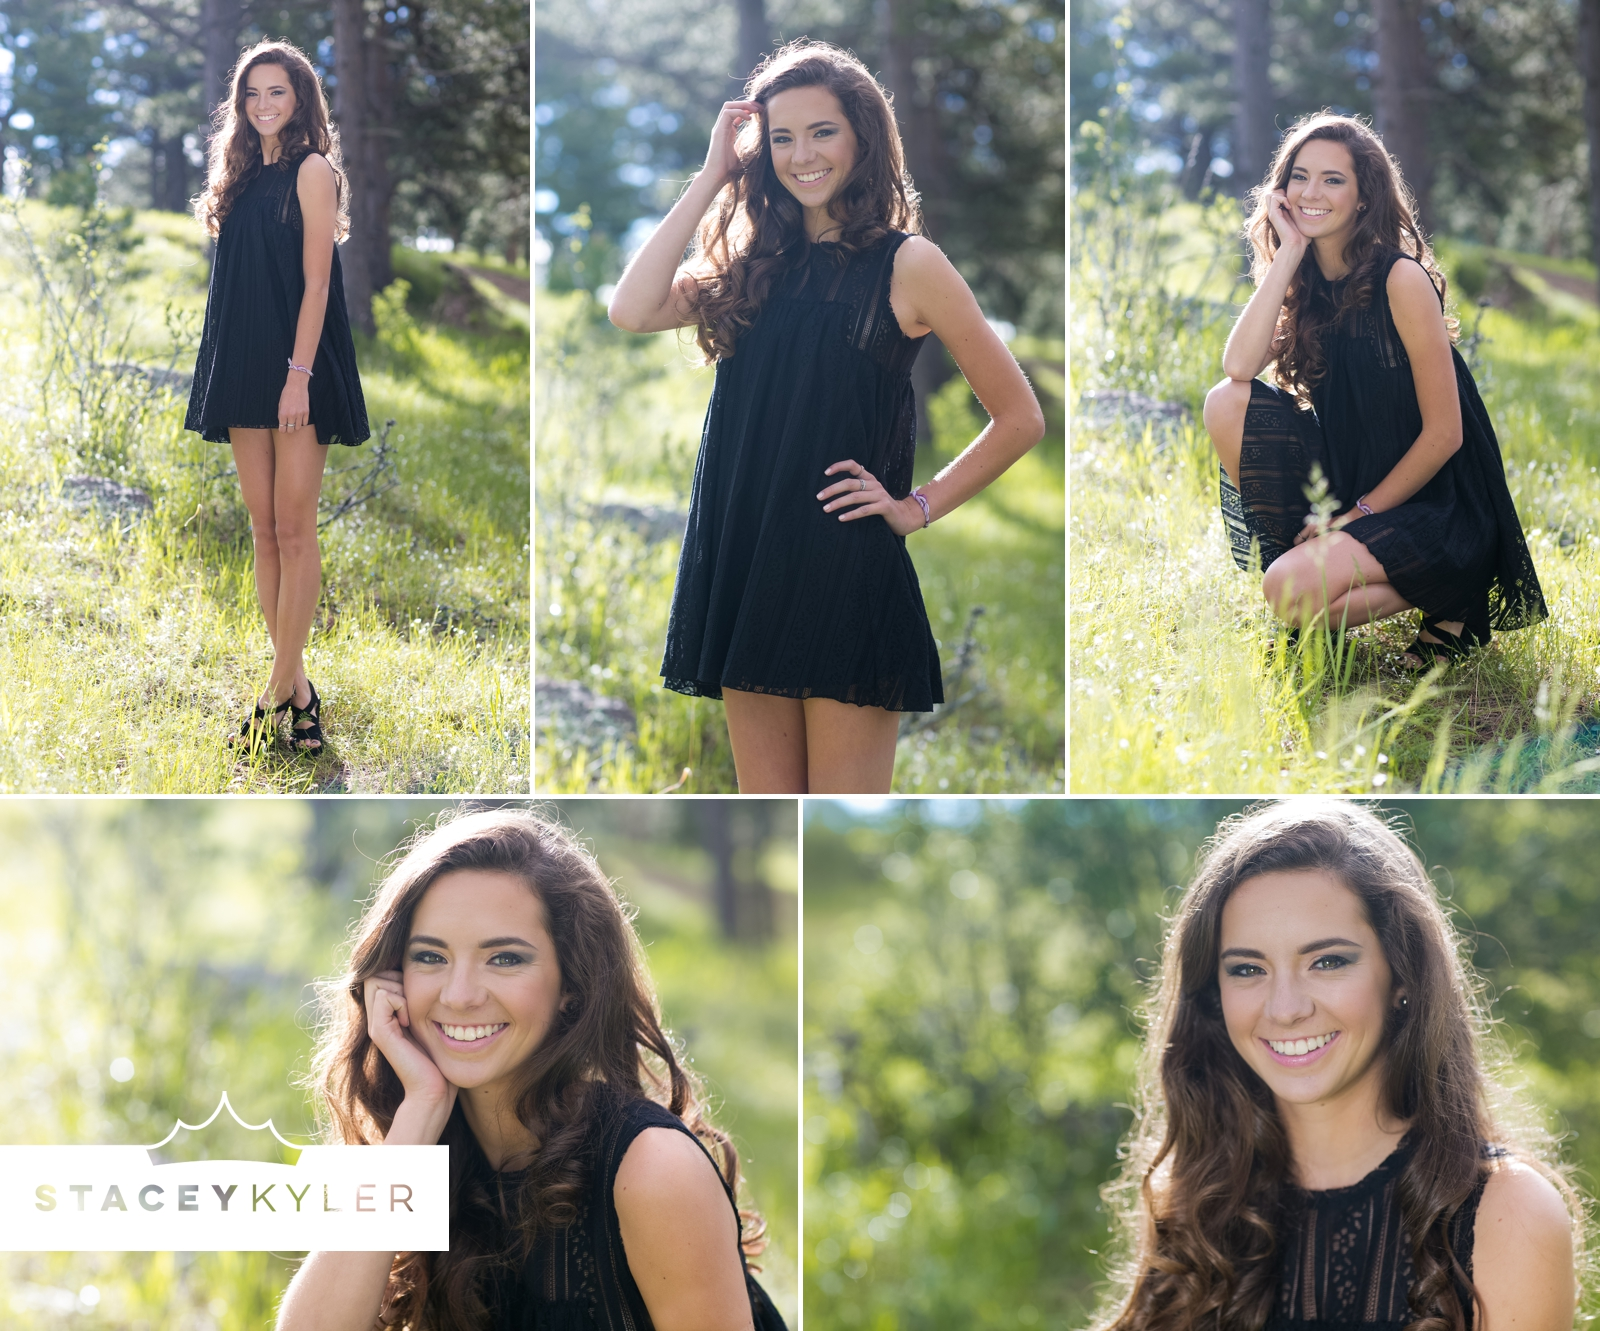 stacey kyler seniors denver senior photographer no euml lle van today s senior feature is noeumllle van lerberghe a 2016 senior at golden high school i adore this girl s personality and her laid back nature so easy to